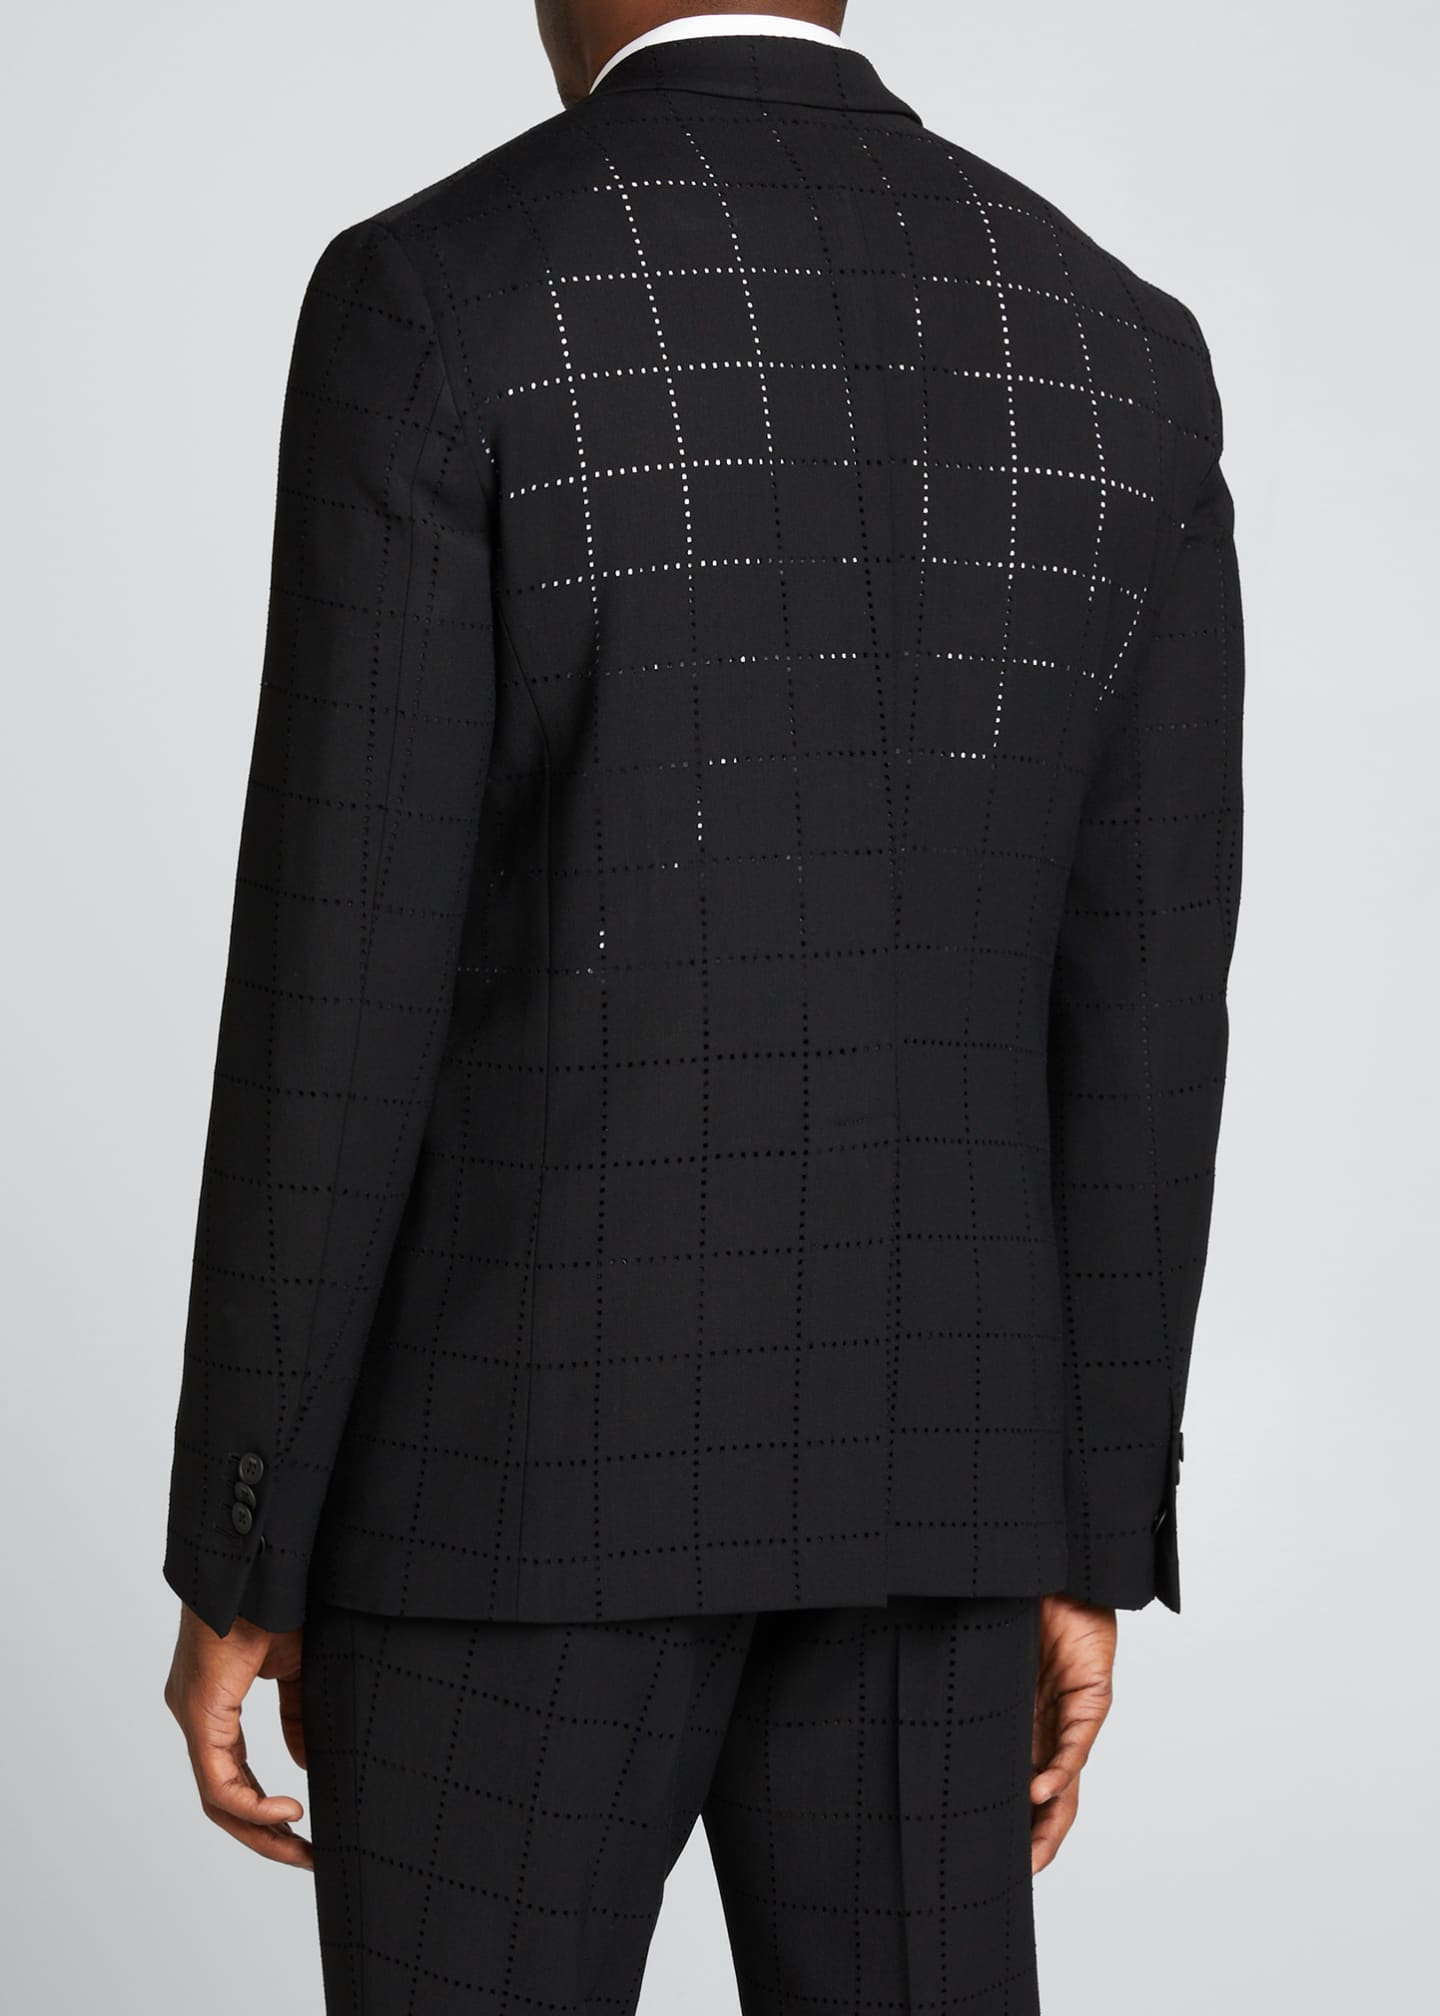 Image 2 of 5: Men's Punched Squares Suit Jacket